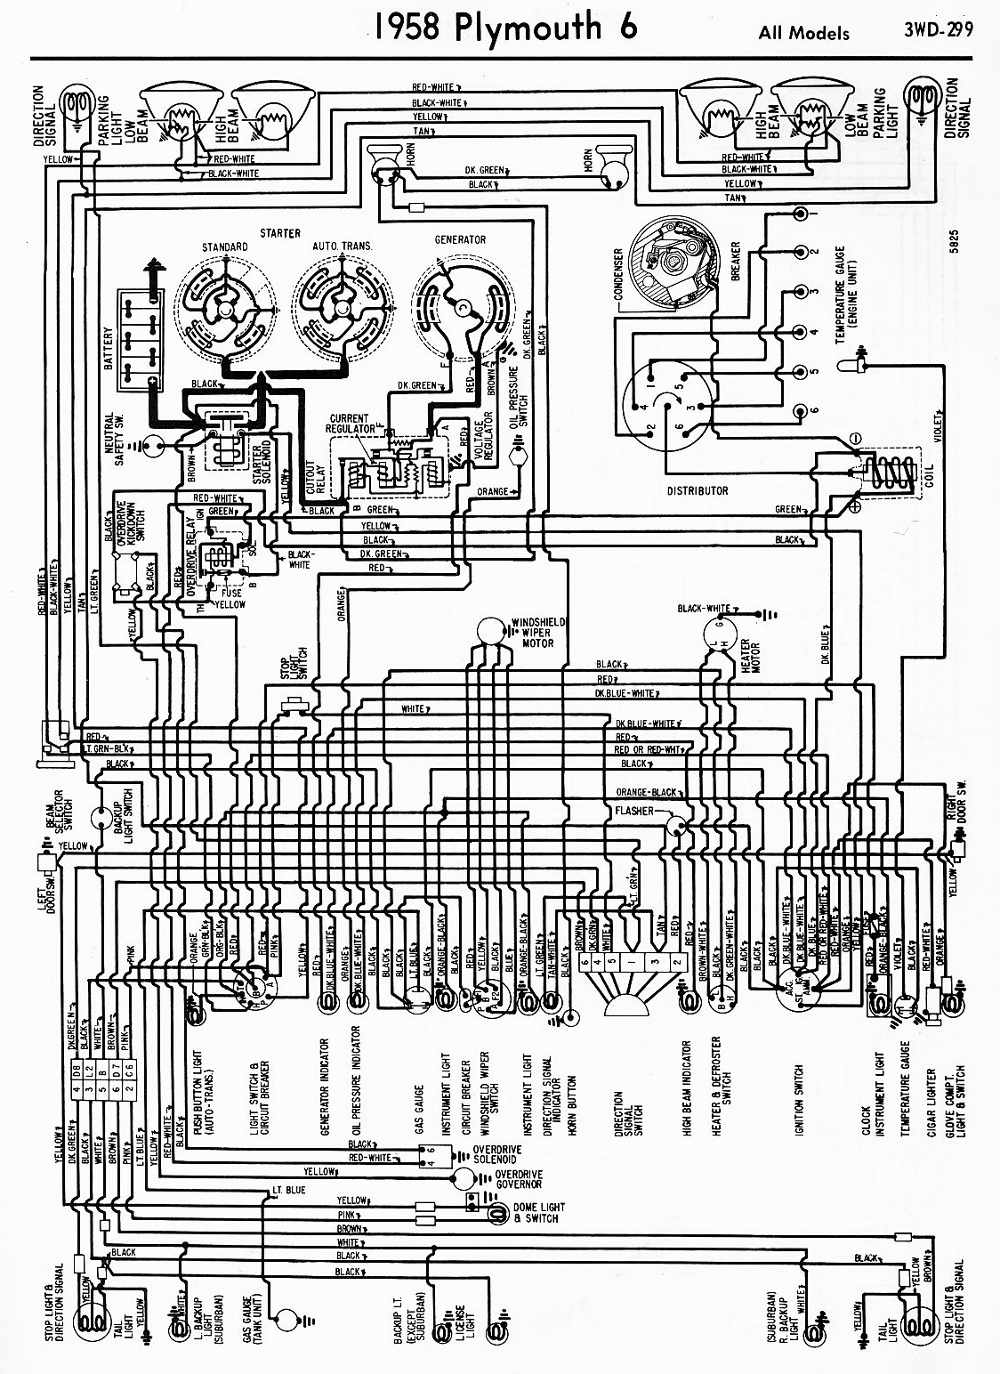 1951 packard wiring diagram wiring diagram third levelpackard wiring diagram wiring diagram third level 1951 studebaker [ 1000 x 1374 Pixel ]